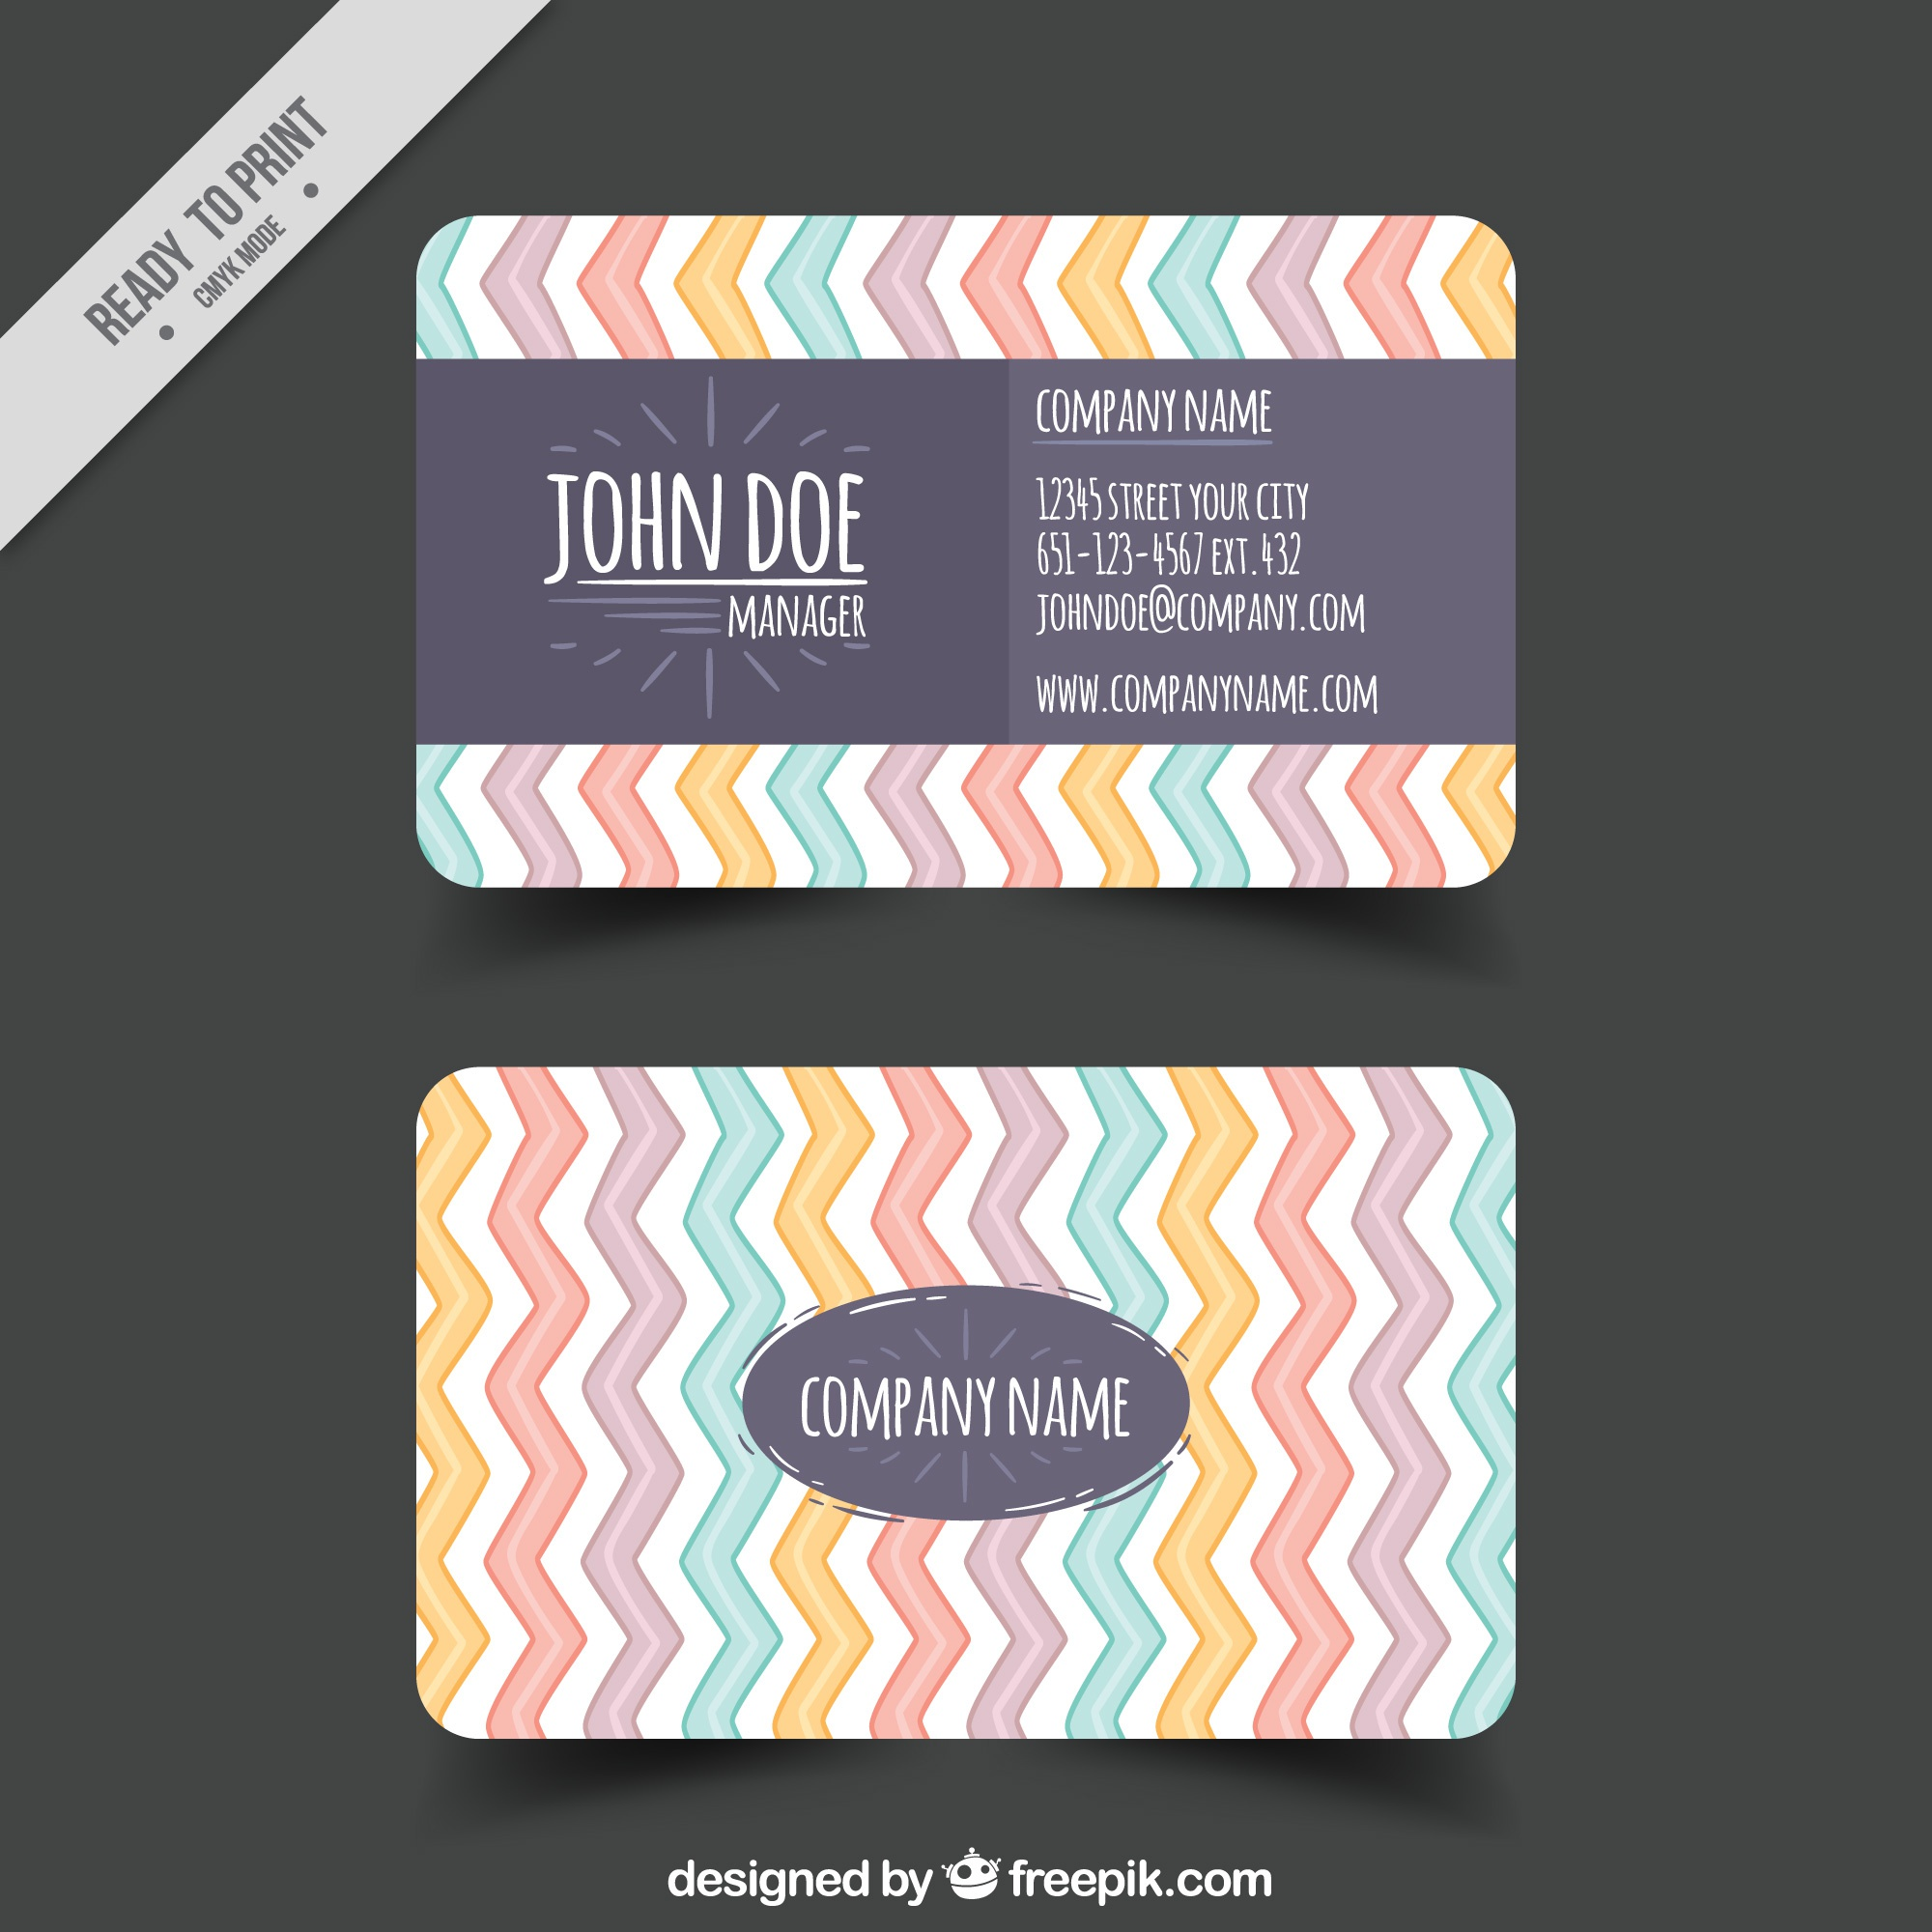 Hand-drawn business card with colored zigzag lines